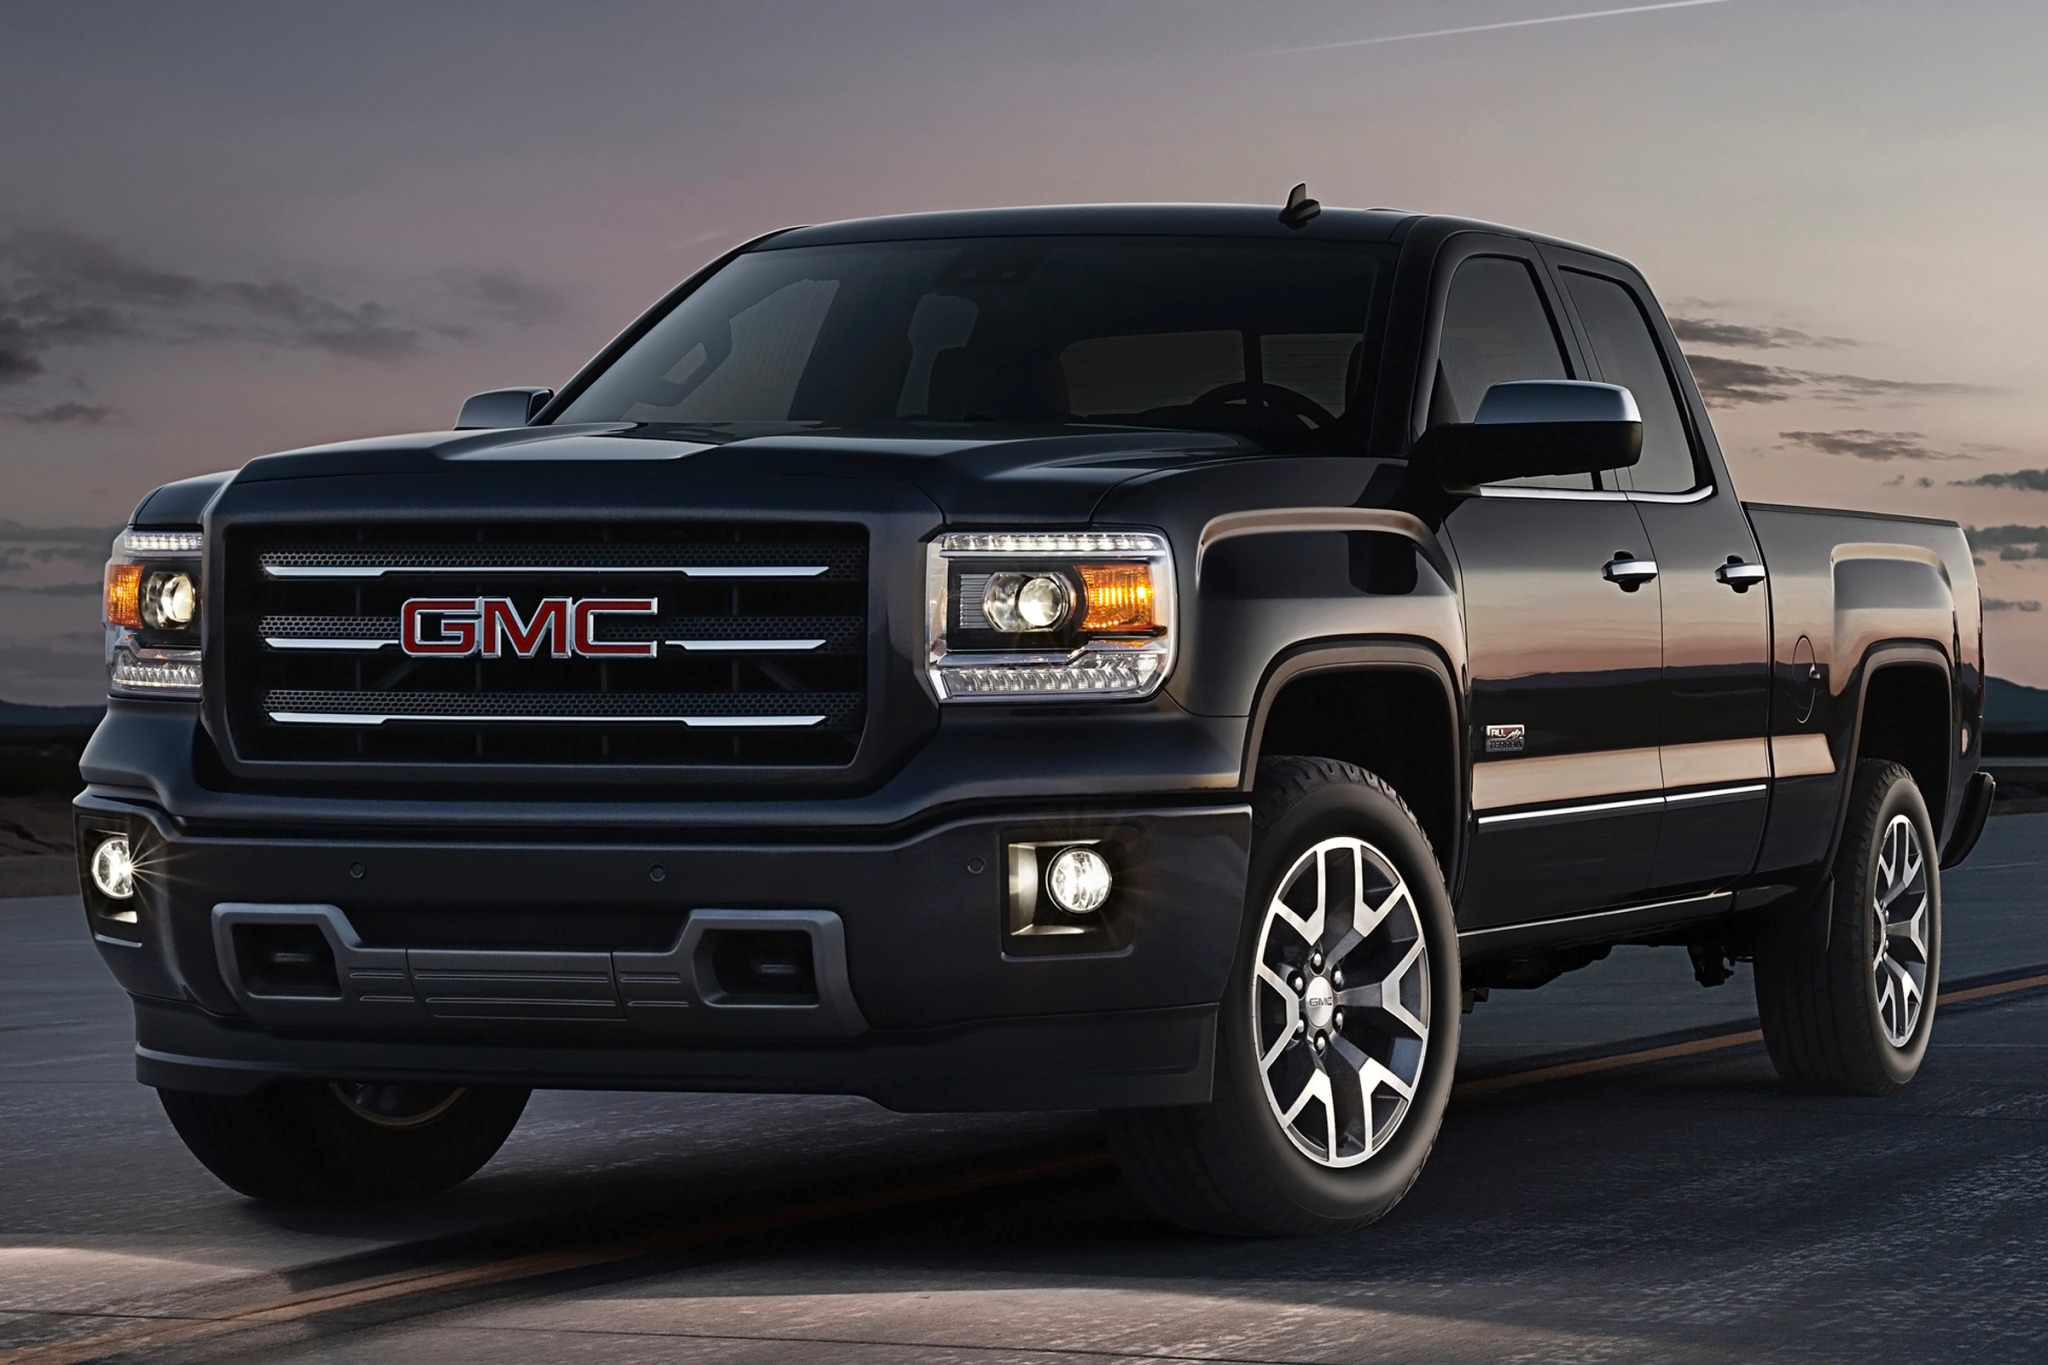 GMC Sierra 2500hd #10